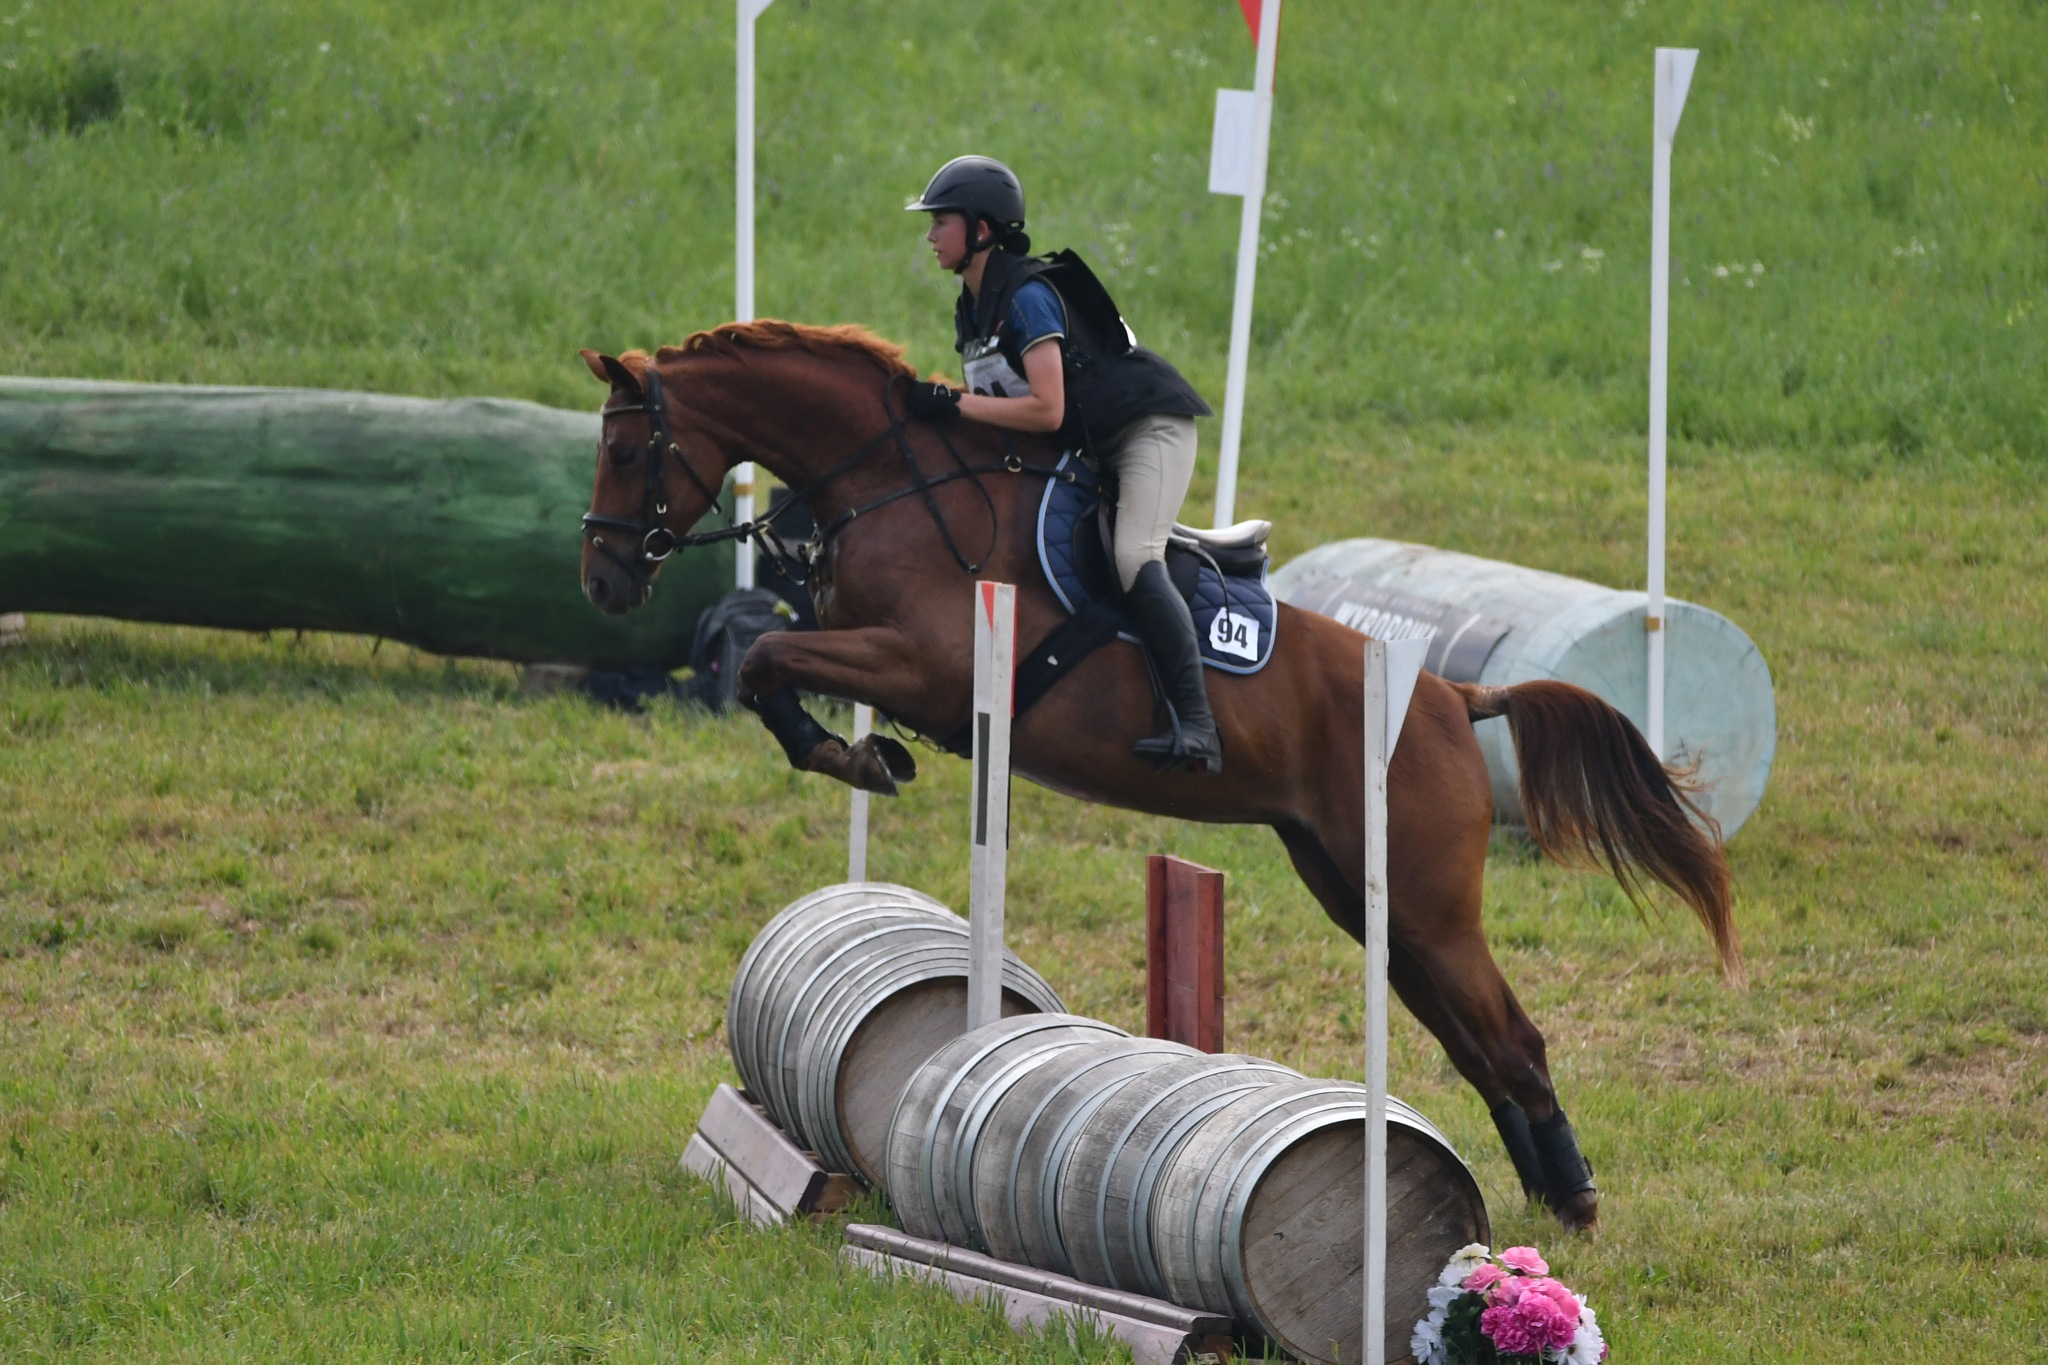 Cross country equestrian comp by Mark Schmit